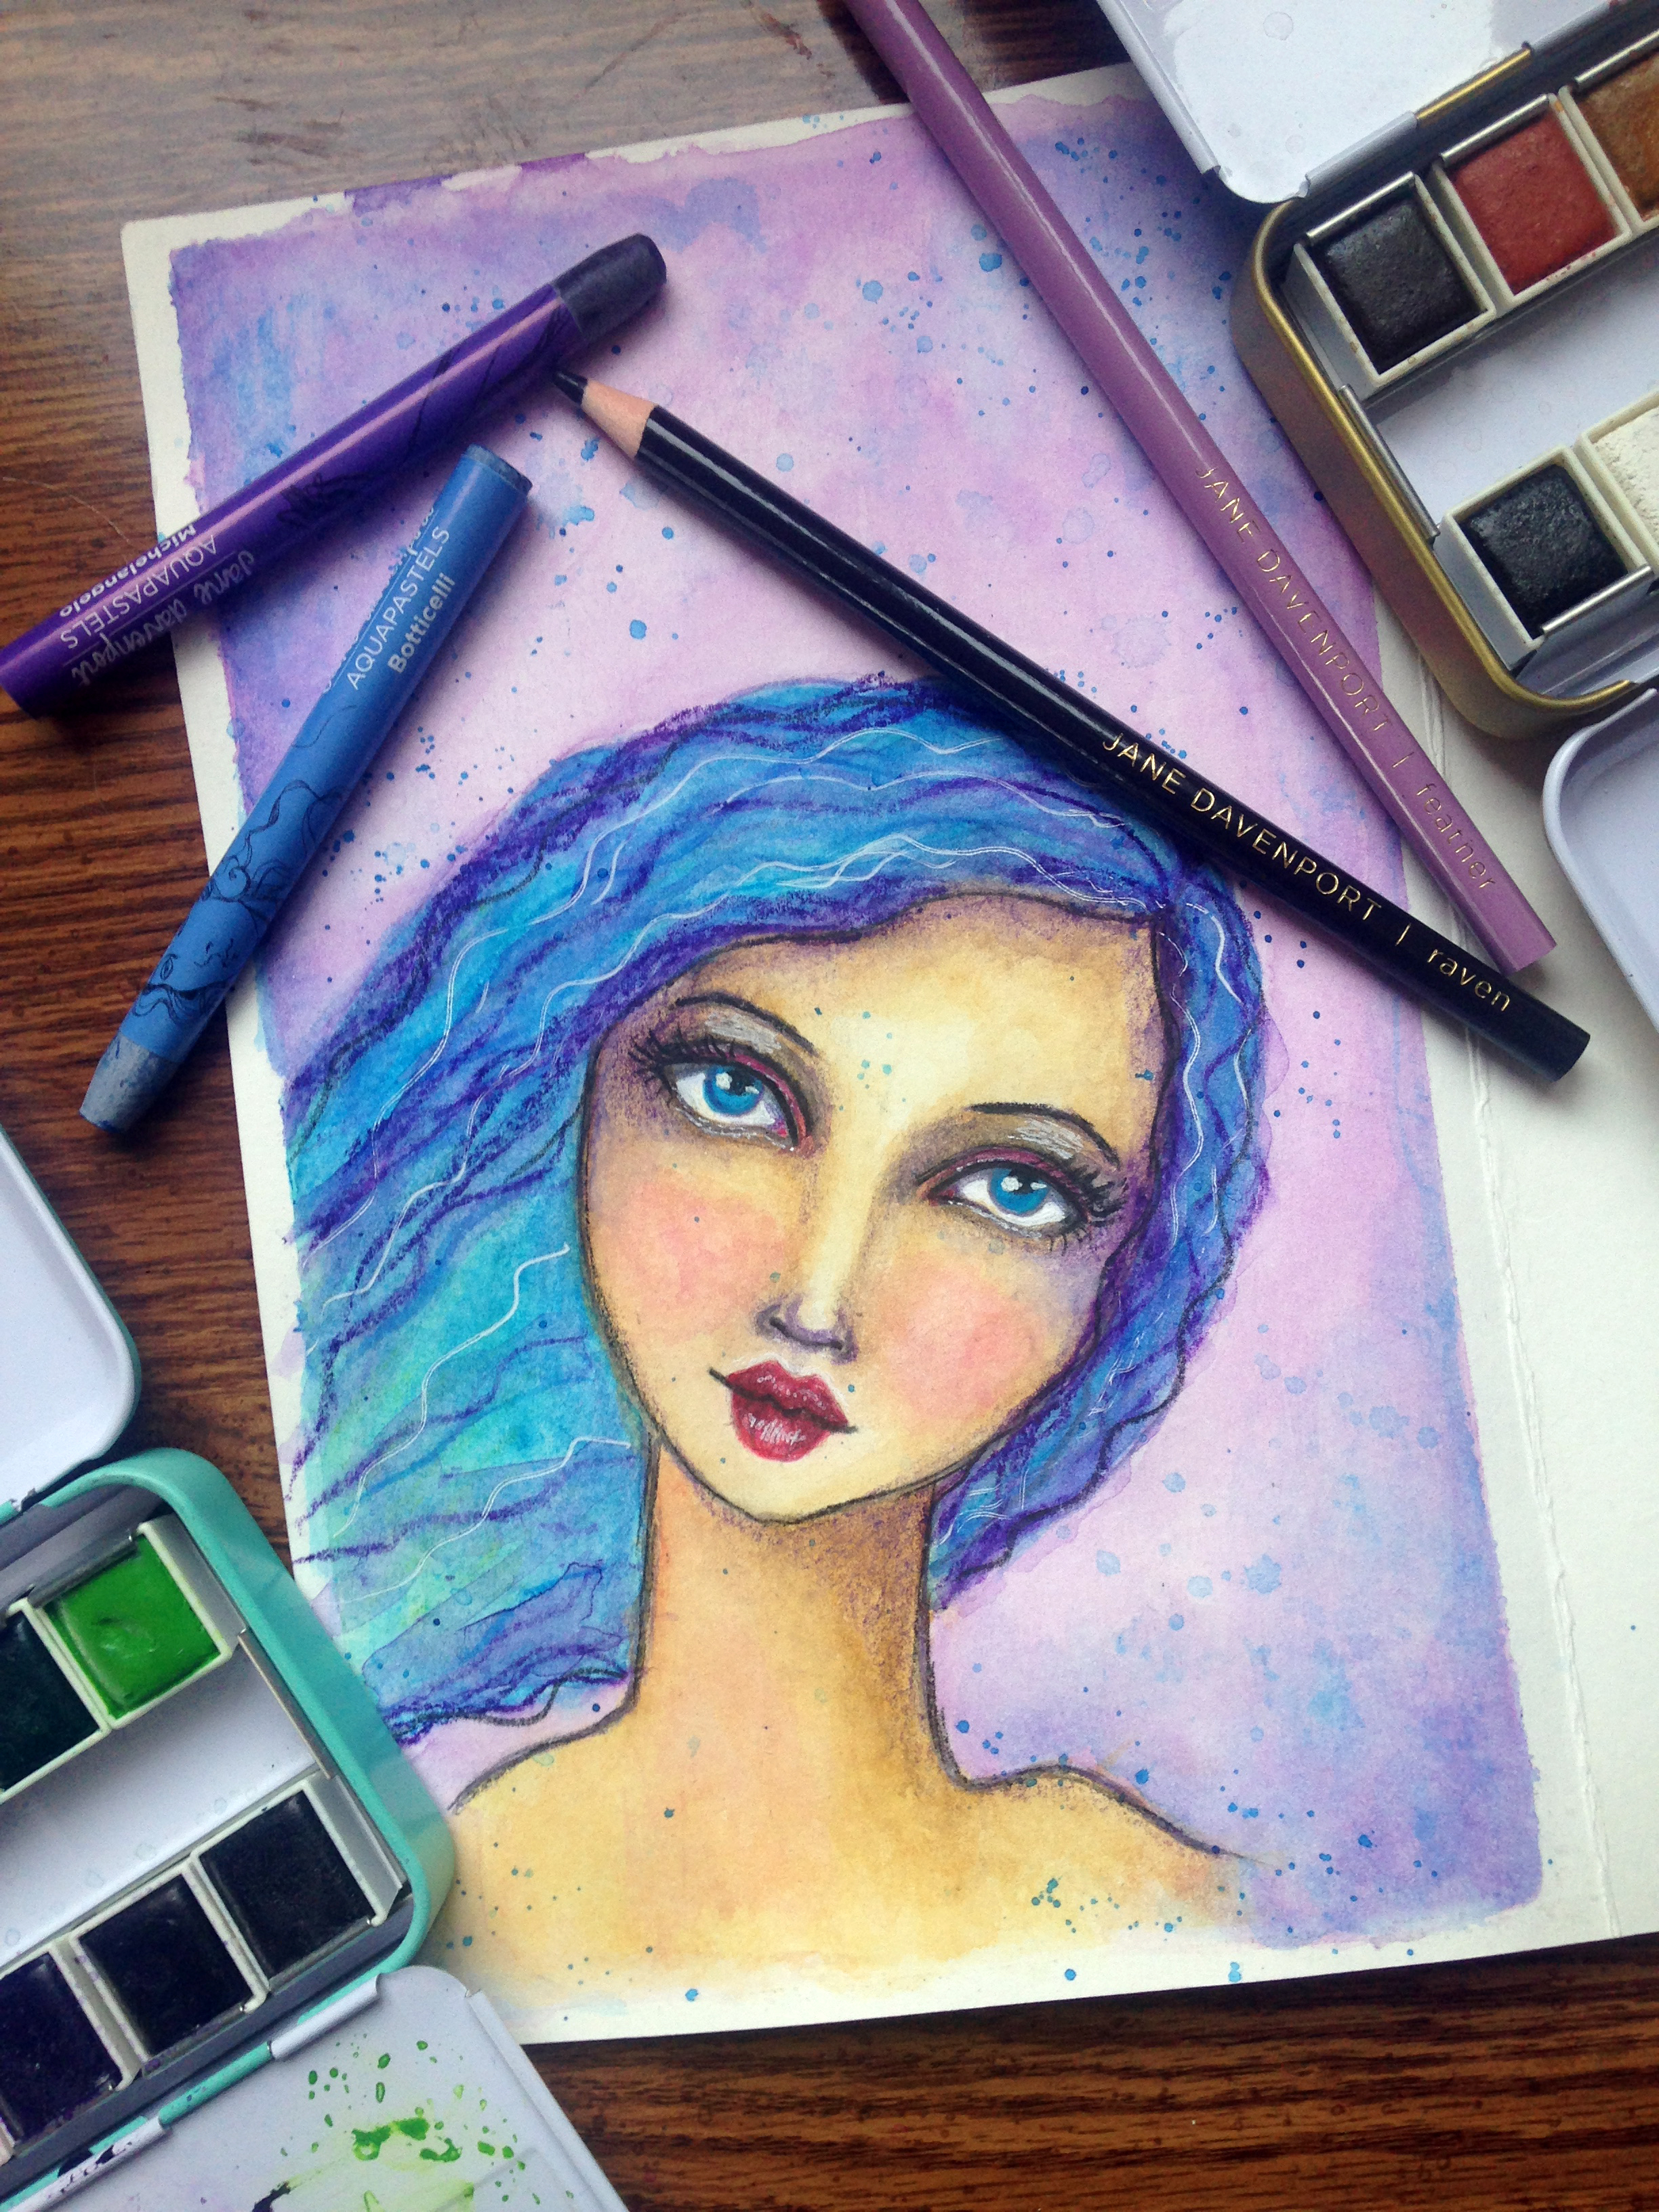 Fun Fab Face 1/100. Jane Davenport Inspired Blue-Haired Whimsical Girl Watercolor Painting. Artwork By Corrinna Johnson. 100 Fun Fab Faces Drawing Challenge Hosted By Karen Campbell.